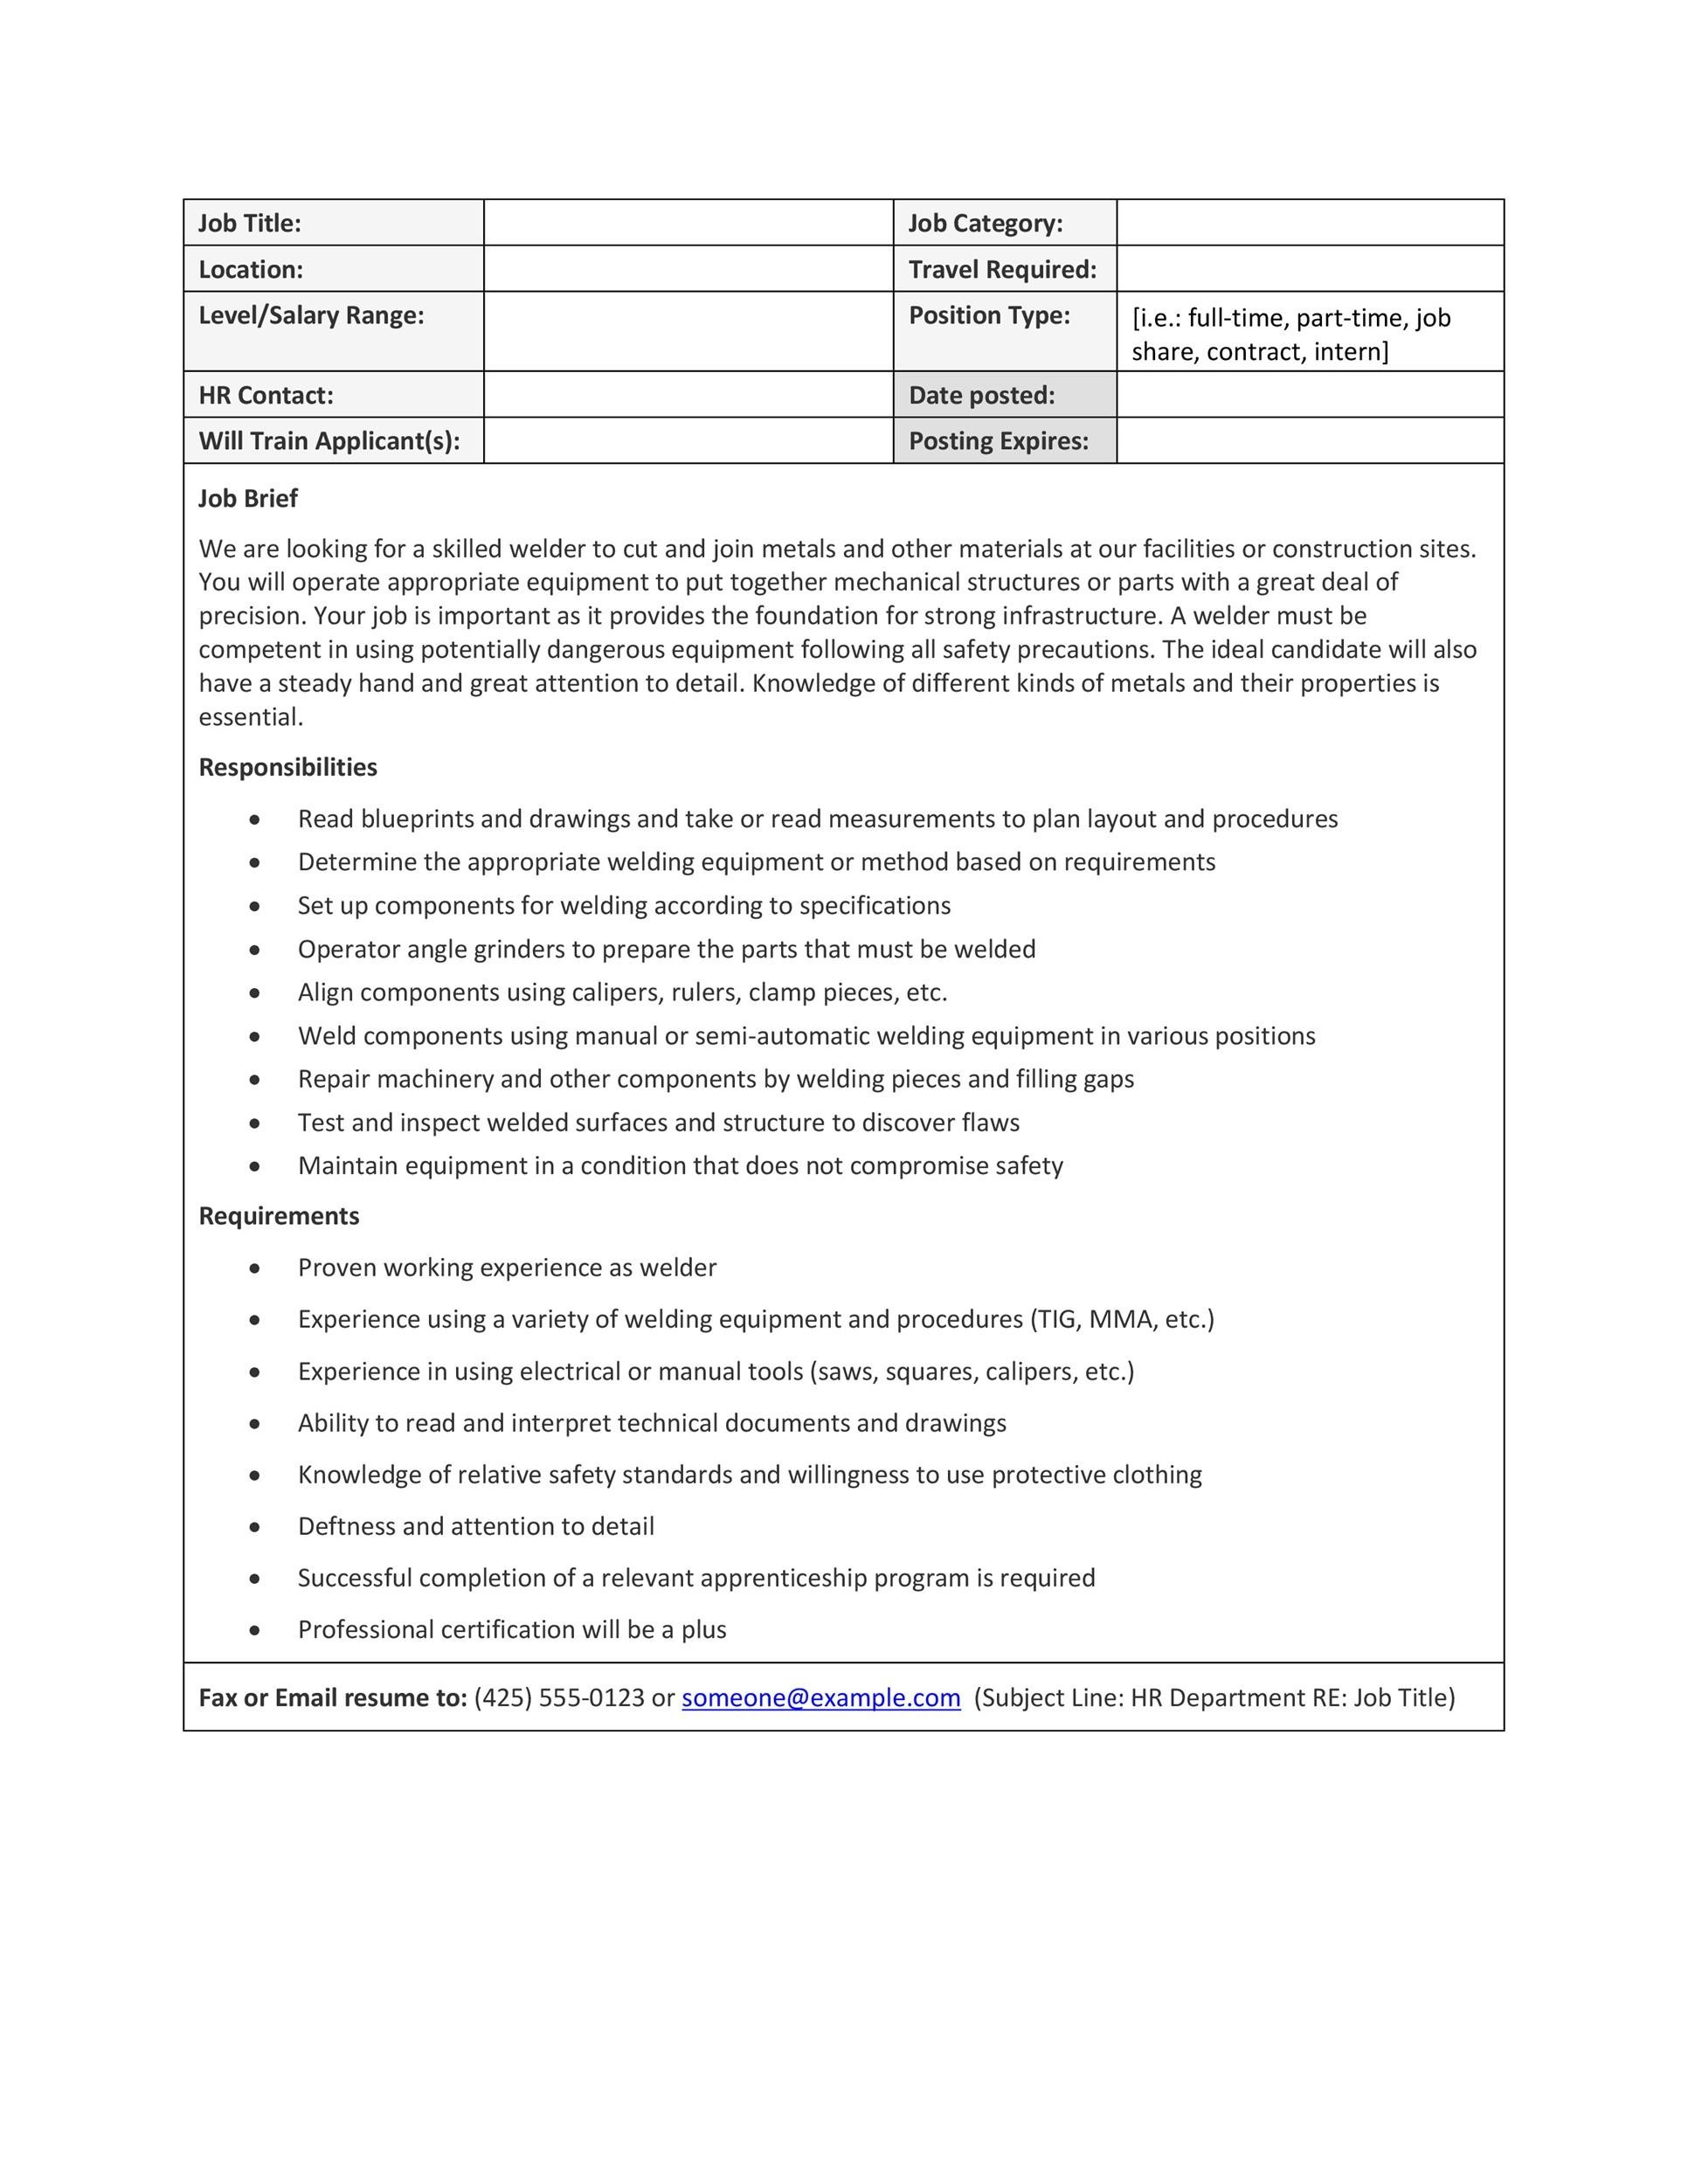 Free Job Description Template 23